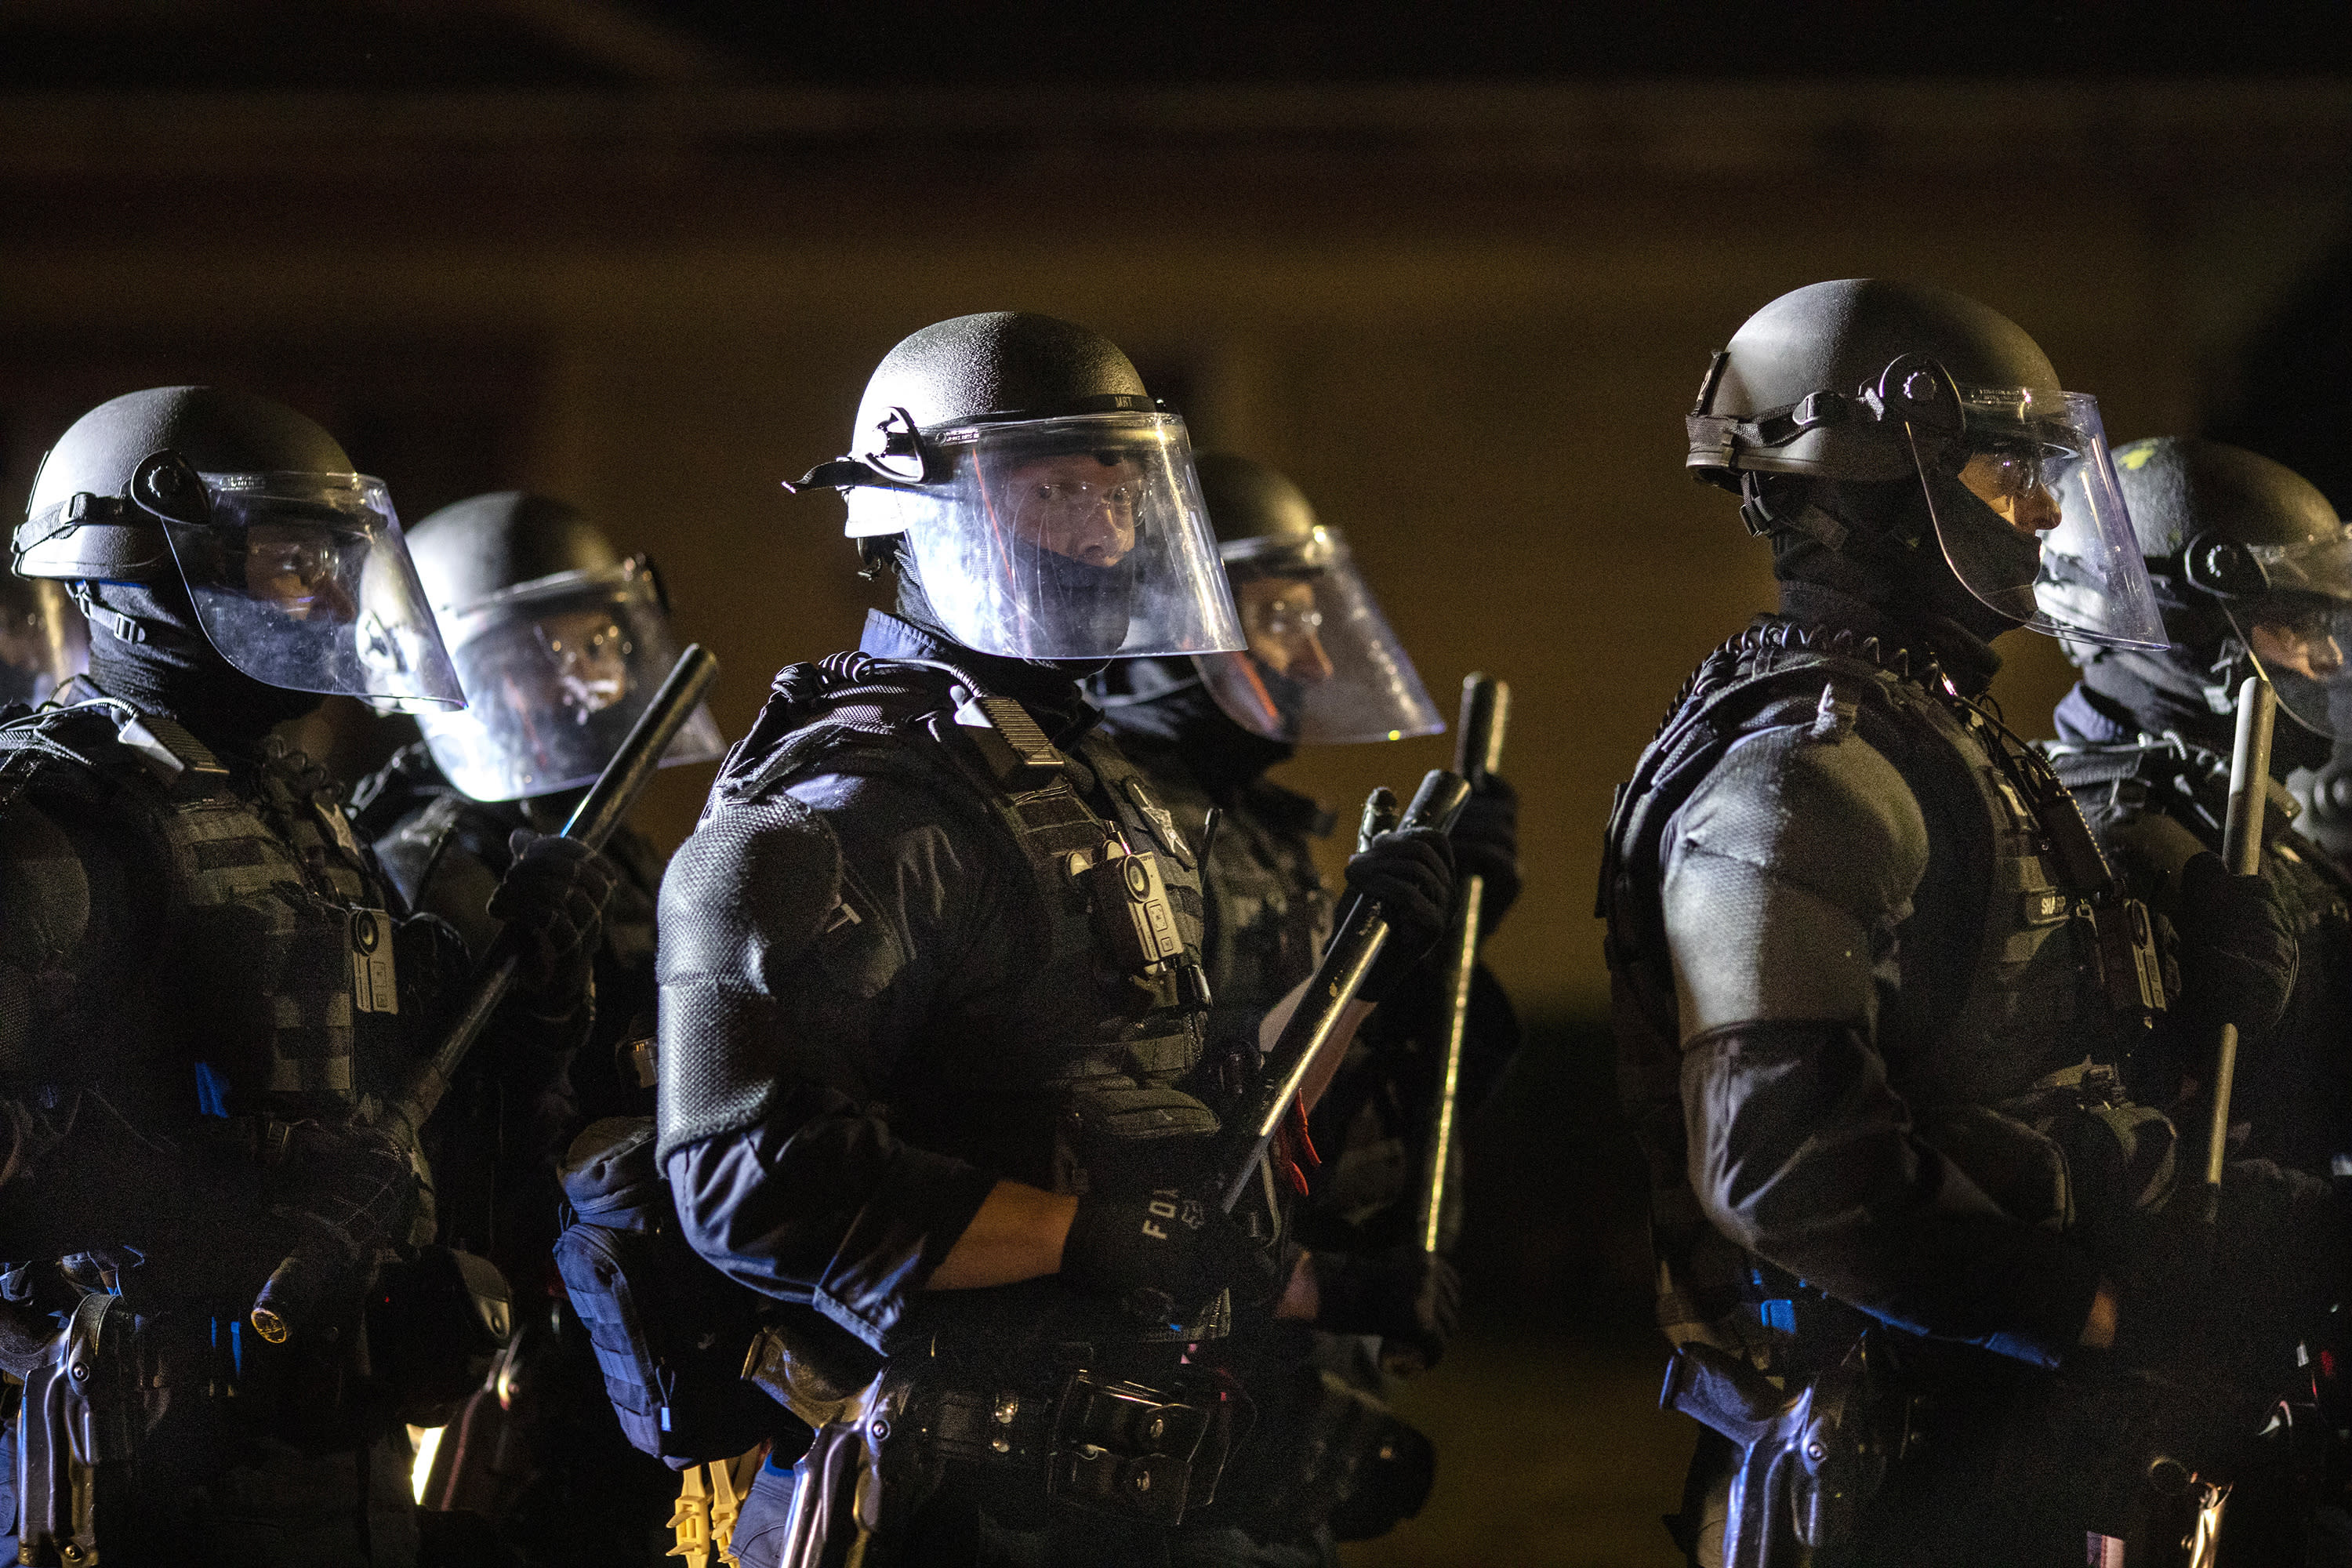 Portland police take control of the streets after making arrests on the scene of the nightly protests at a Portland police precinct on Sunday, Aug. 30, 2020 in Portland, Ore. Oregon State Police will return to Portland to help local authorities after the fatal shooting of a man following clashes between President Donald Trump supporters and counter-protesters that led to an argument between the president and the city's mayor over who was to blame for the violence. (AP Photo/Paula Bronstein)